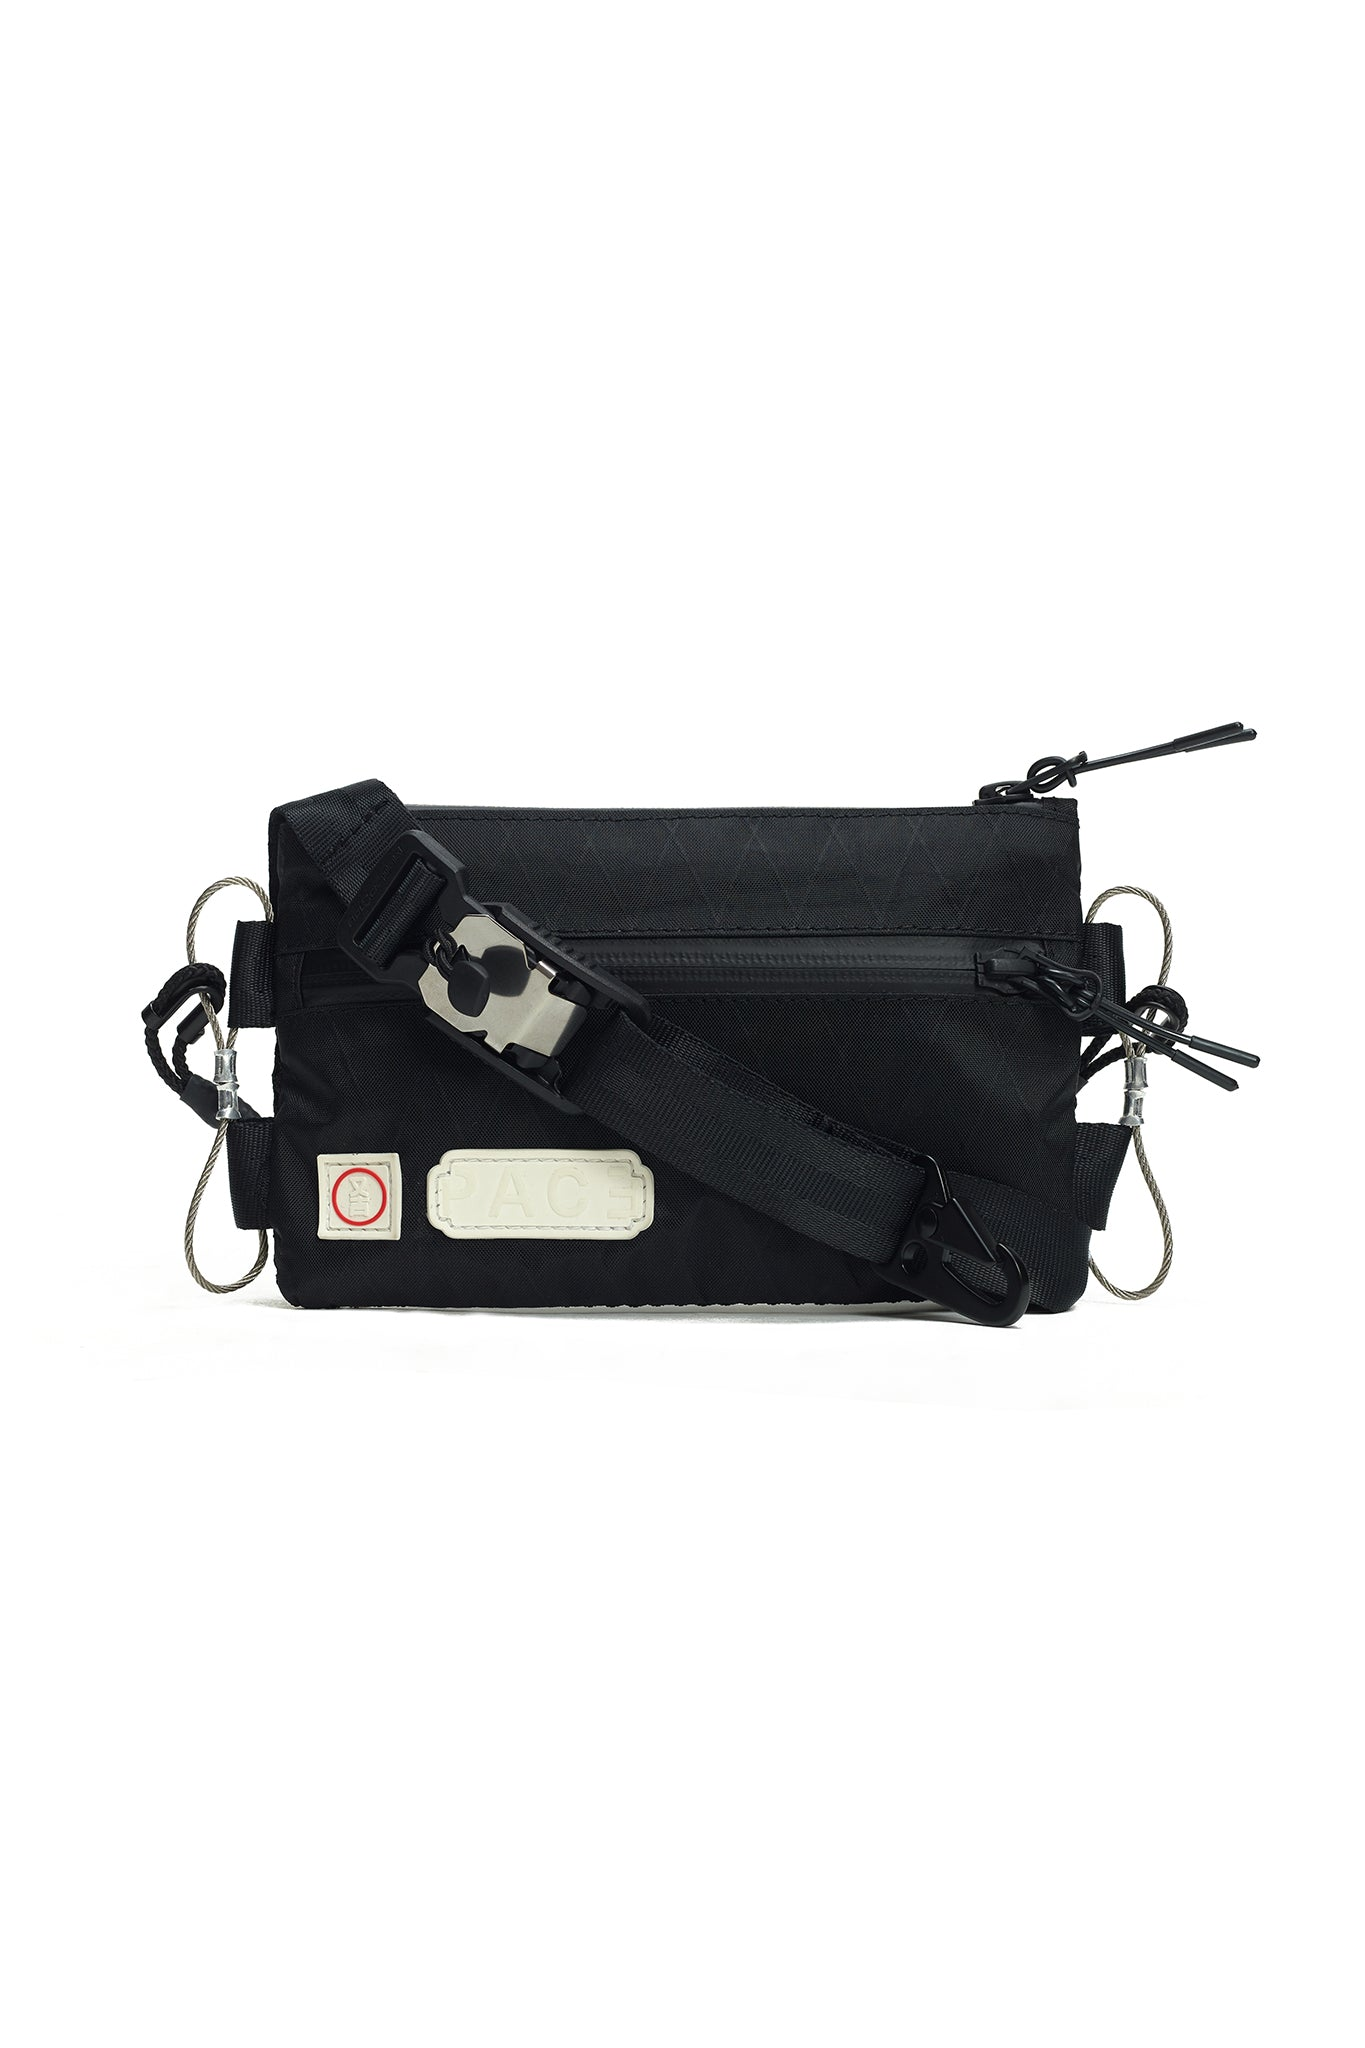 MINI SACOCHE BLACK X-PAC® BAG